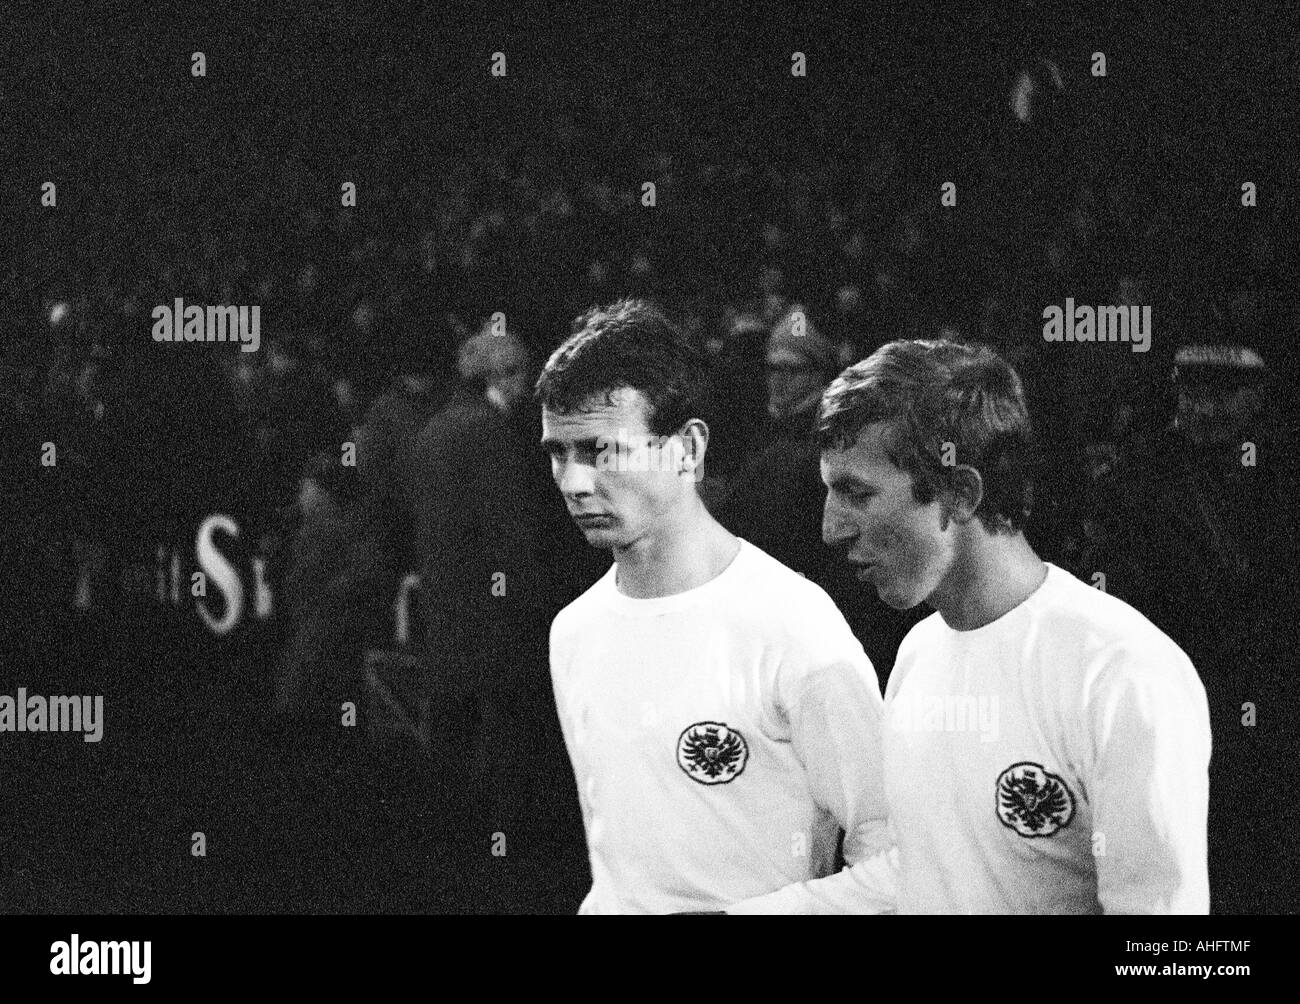 football, Bundesliga, 1968/1969, FC Schalke 04 versus Eintracht Frankfurt 2:0, Glueckaufkampfbahn Stadium in Gelsenkirchen, football players, left Bernd Hoelzenbein, right Juergen Grabowski (both Frankfurt) - Stock Image